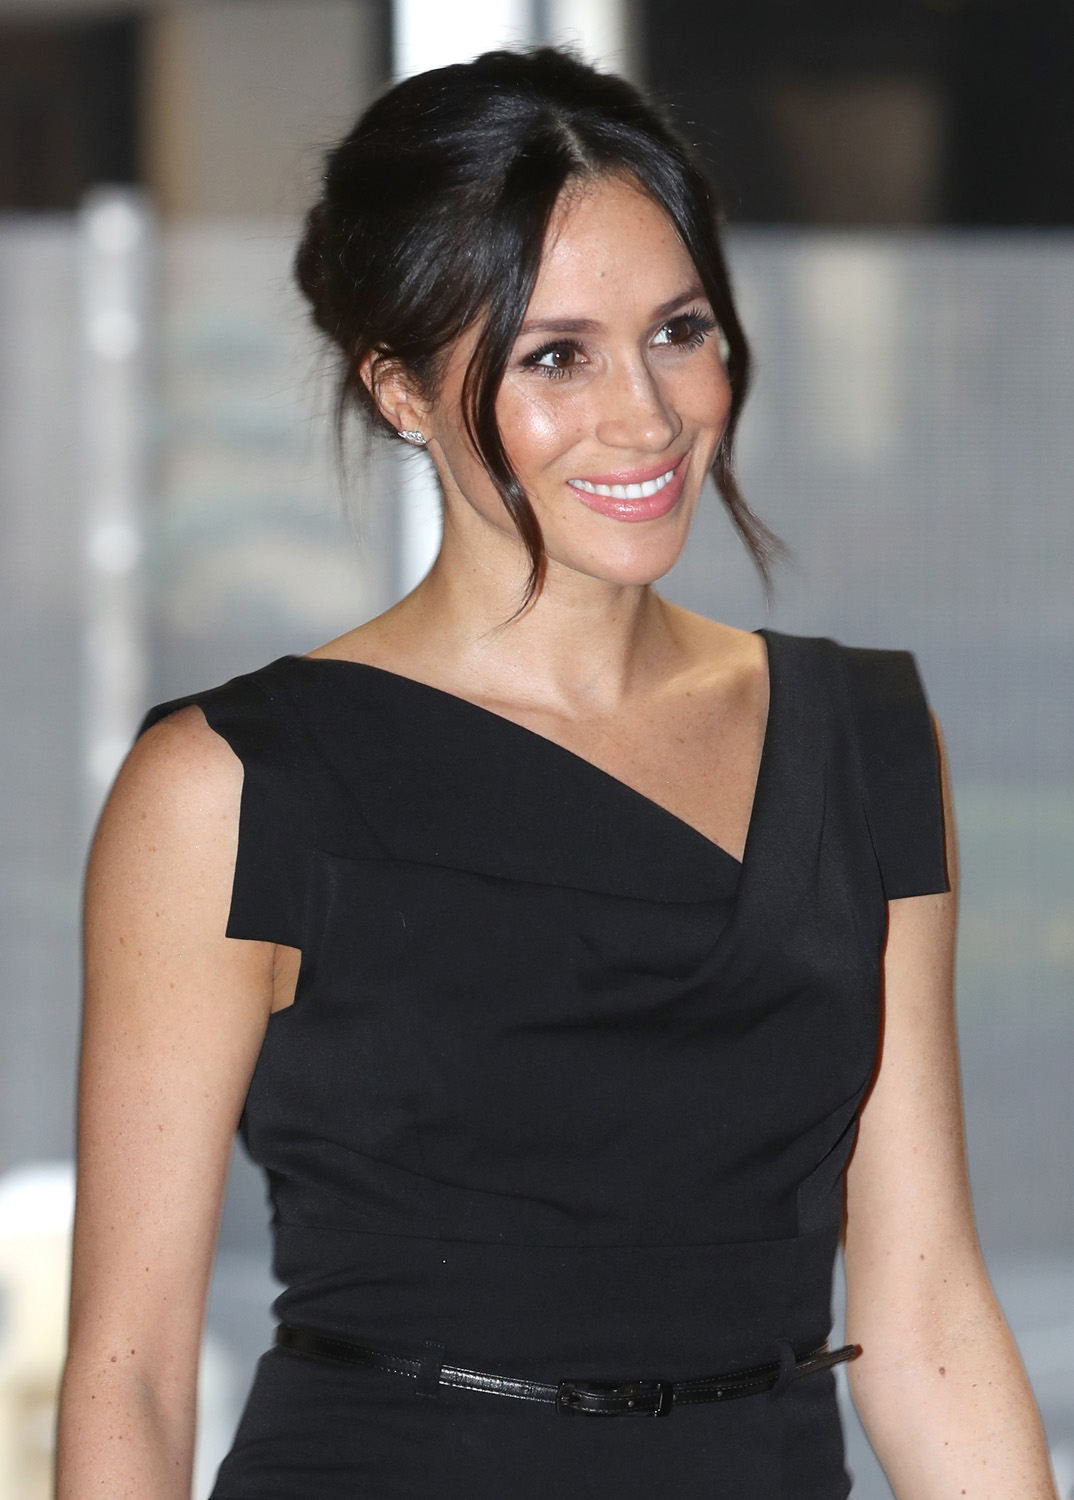 Meghan Markle fan del yoga, correr y pilates